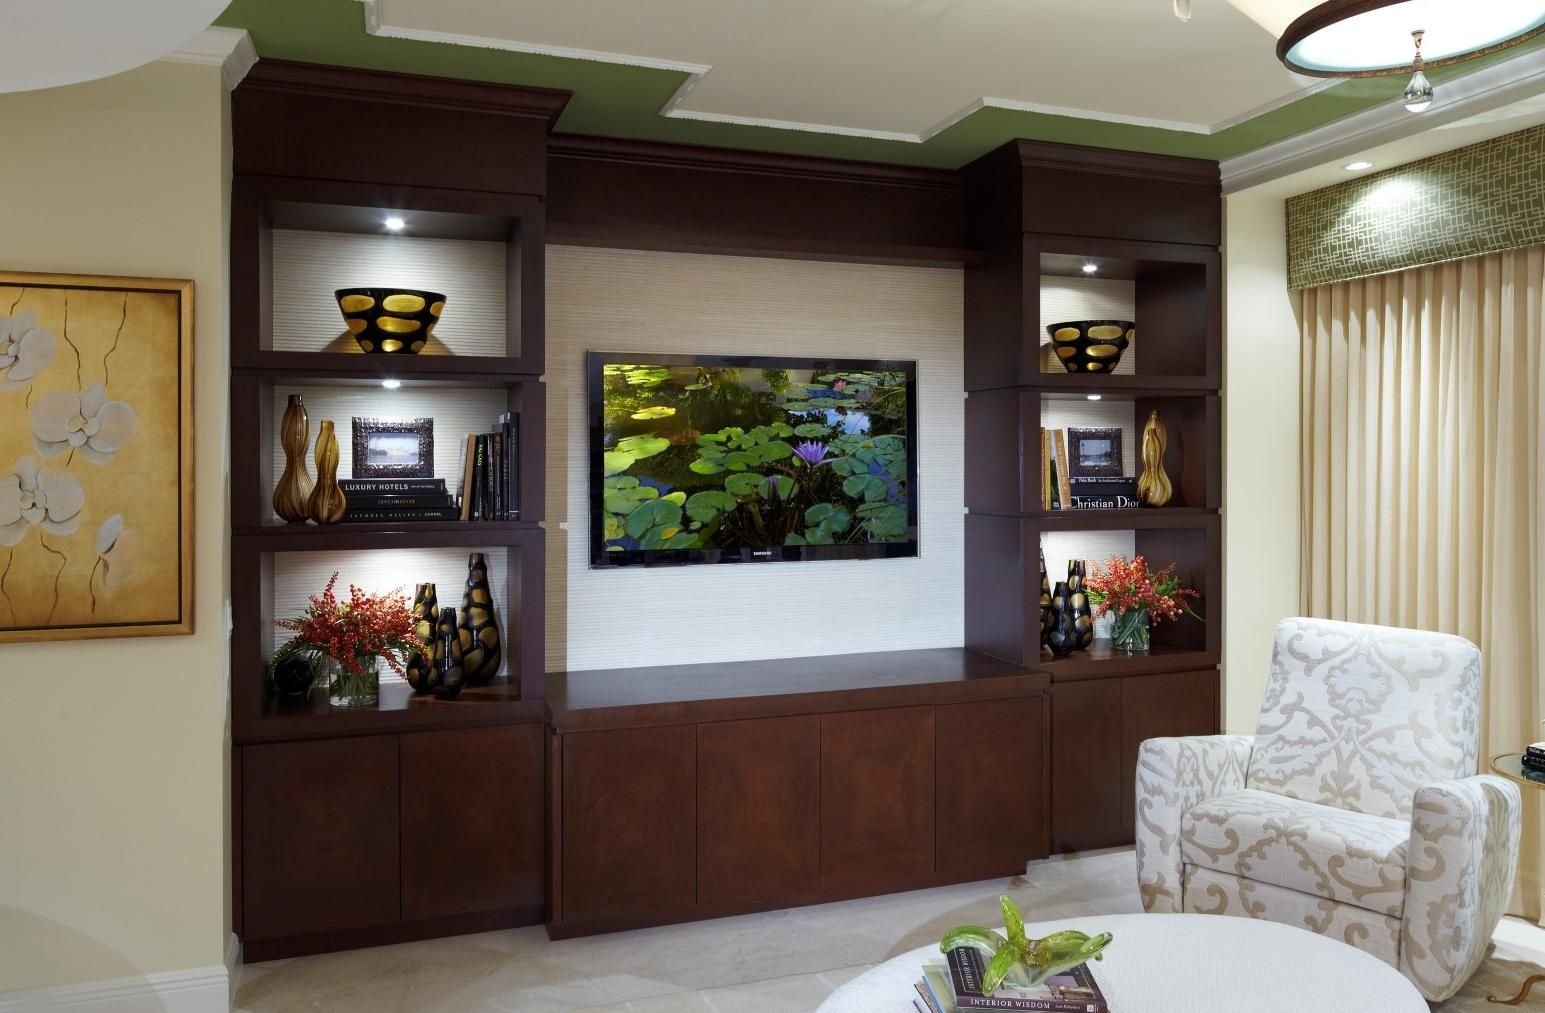 Living Room Entertainment Center Ideas Google Search Ideas For Our Living